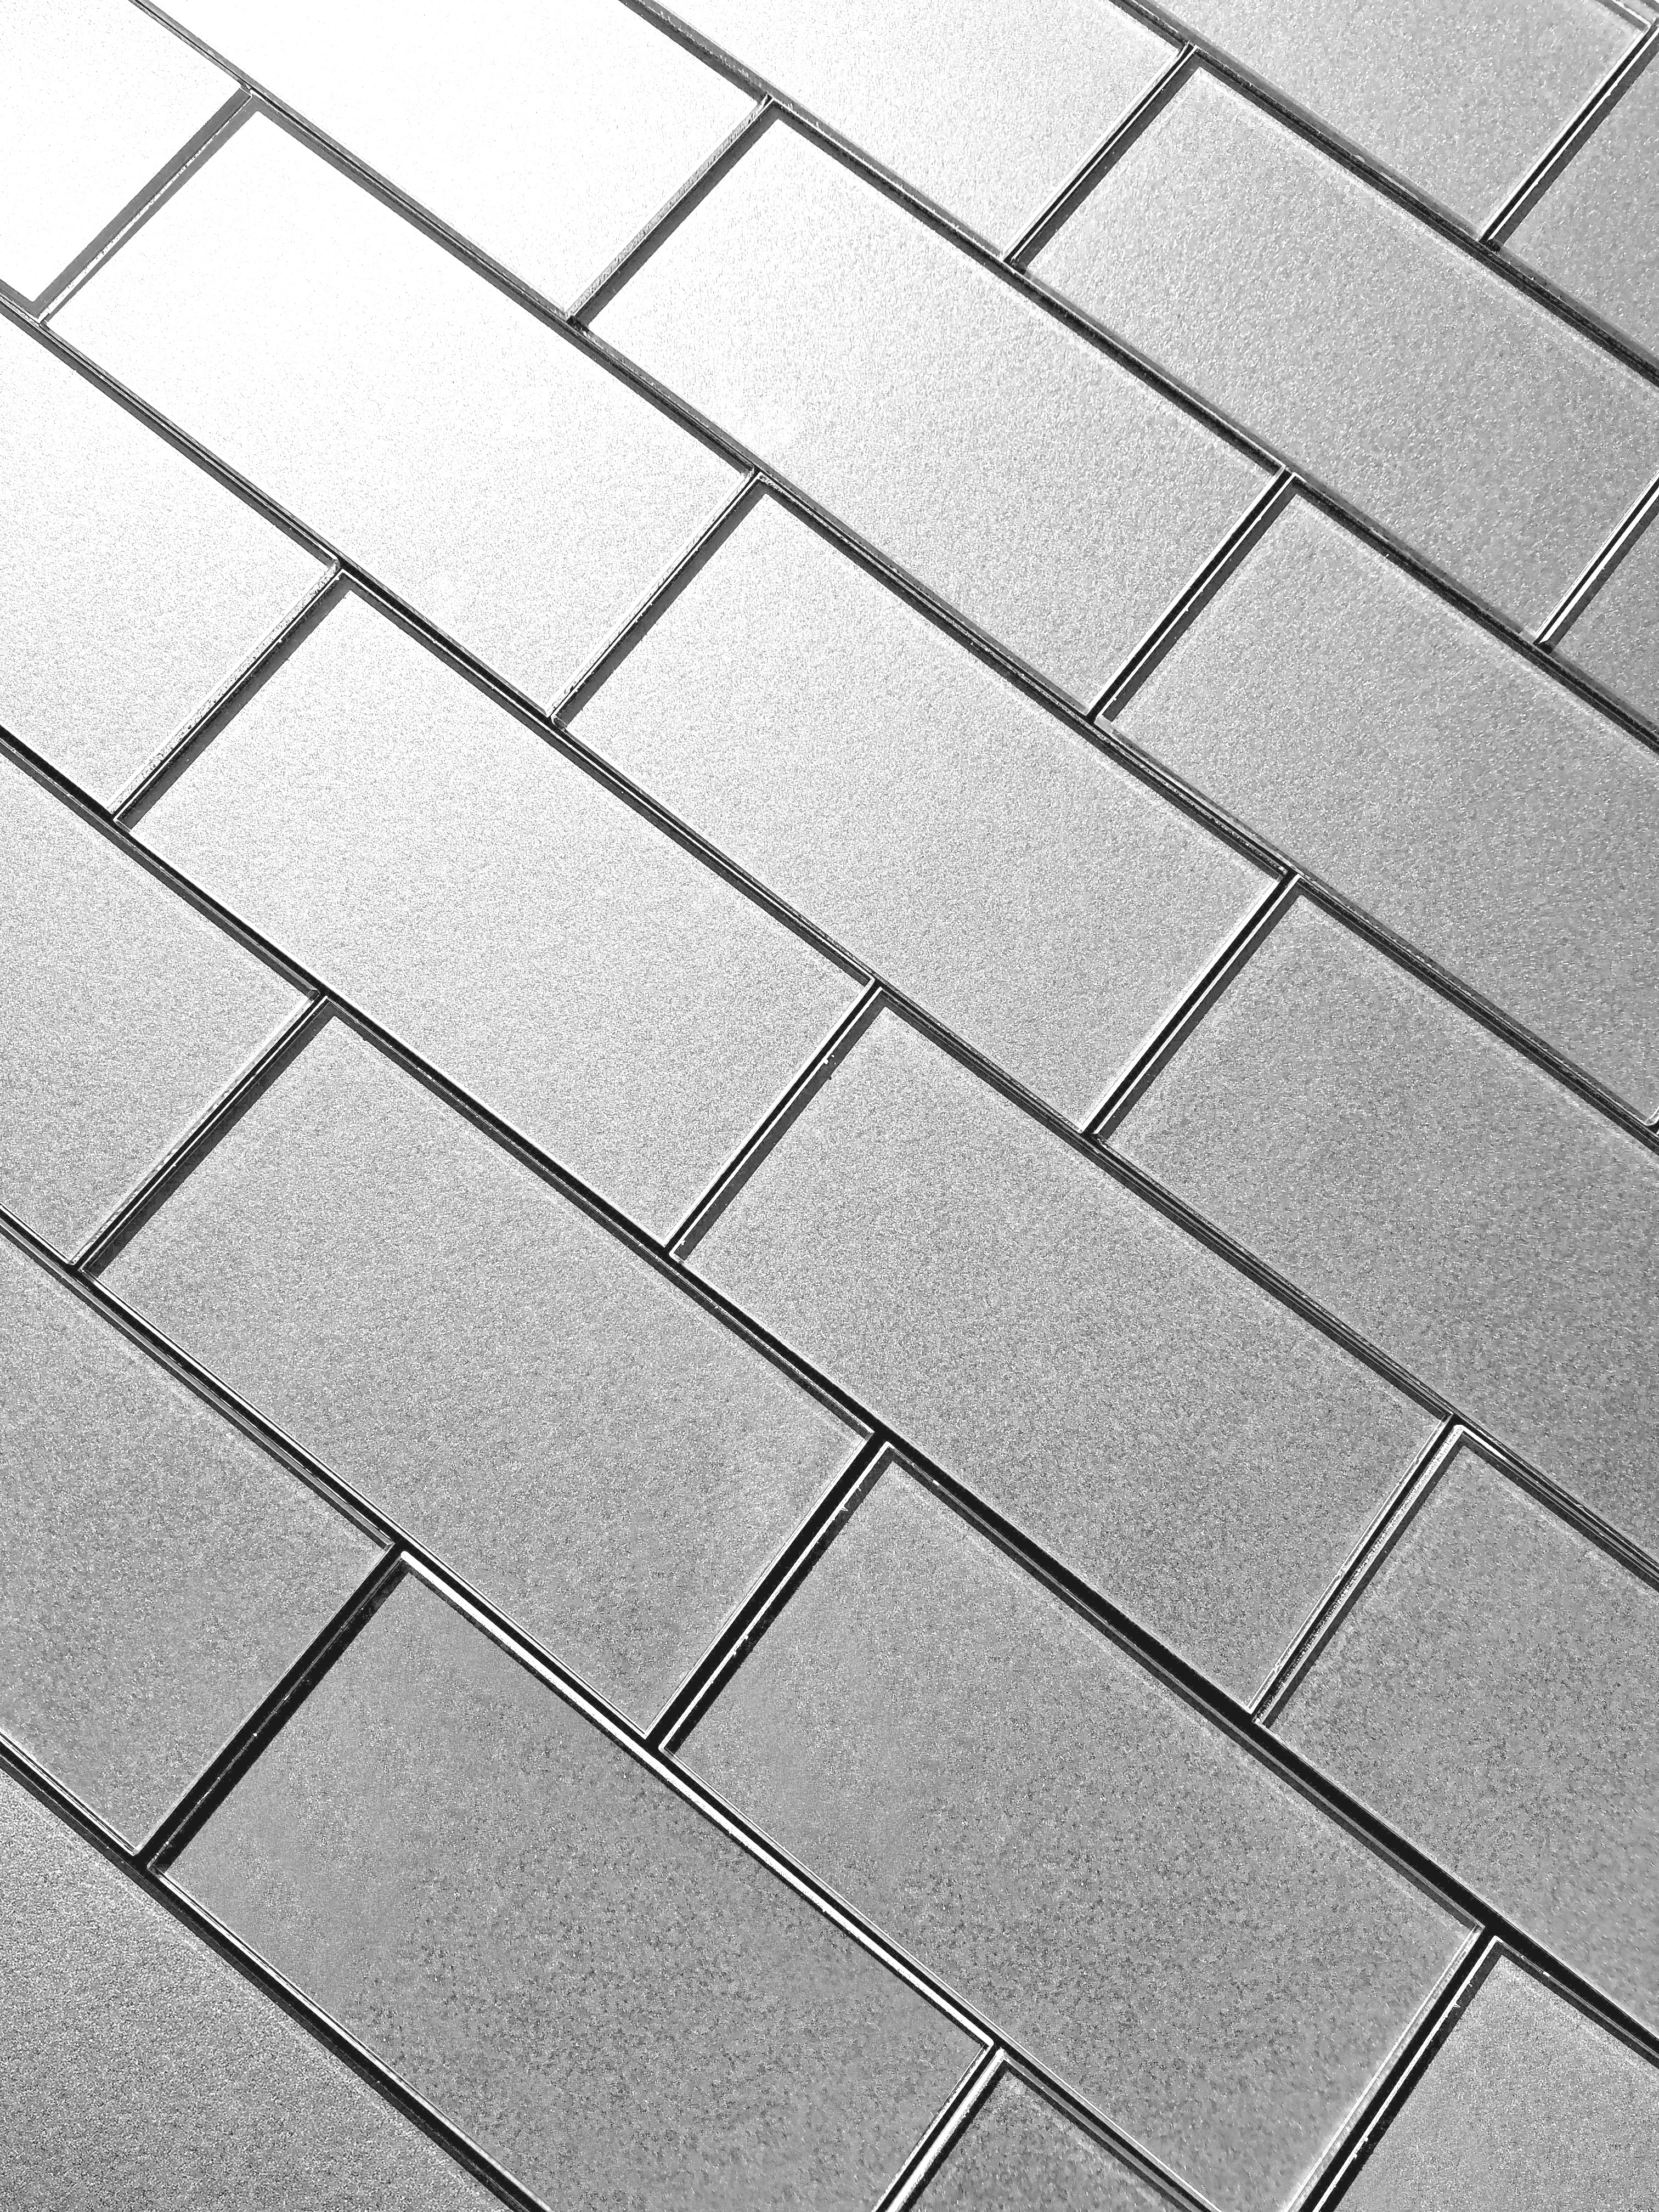 Forever 3 in x 6 in Glass Subway Tile in ETERNAL SILVER Glossy Straight